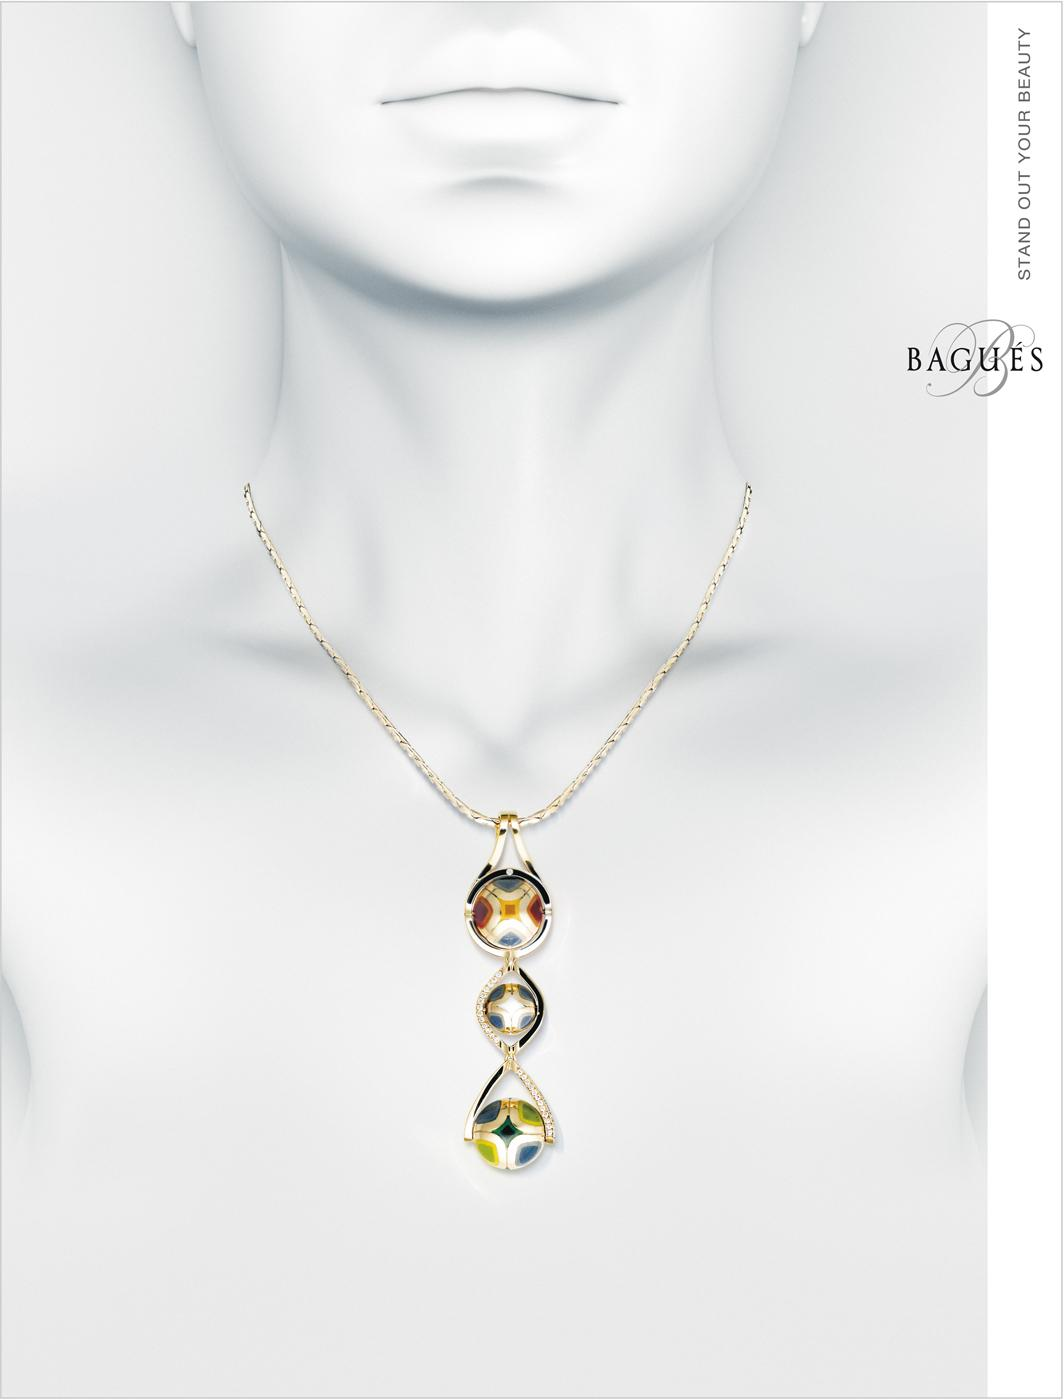 Bagues Jewelry Print Ad -  Necklace